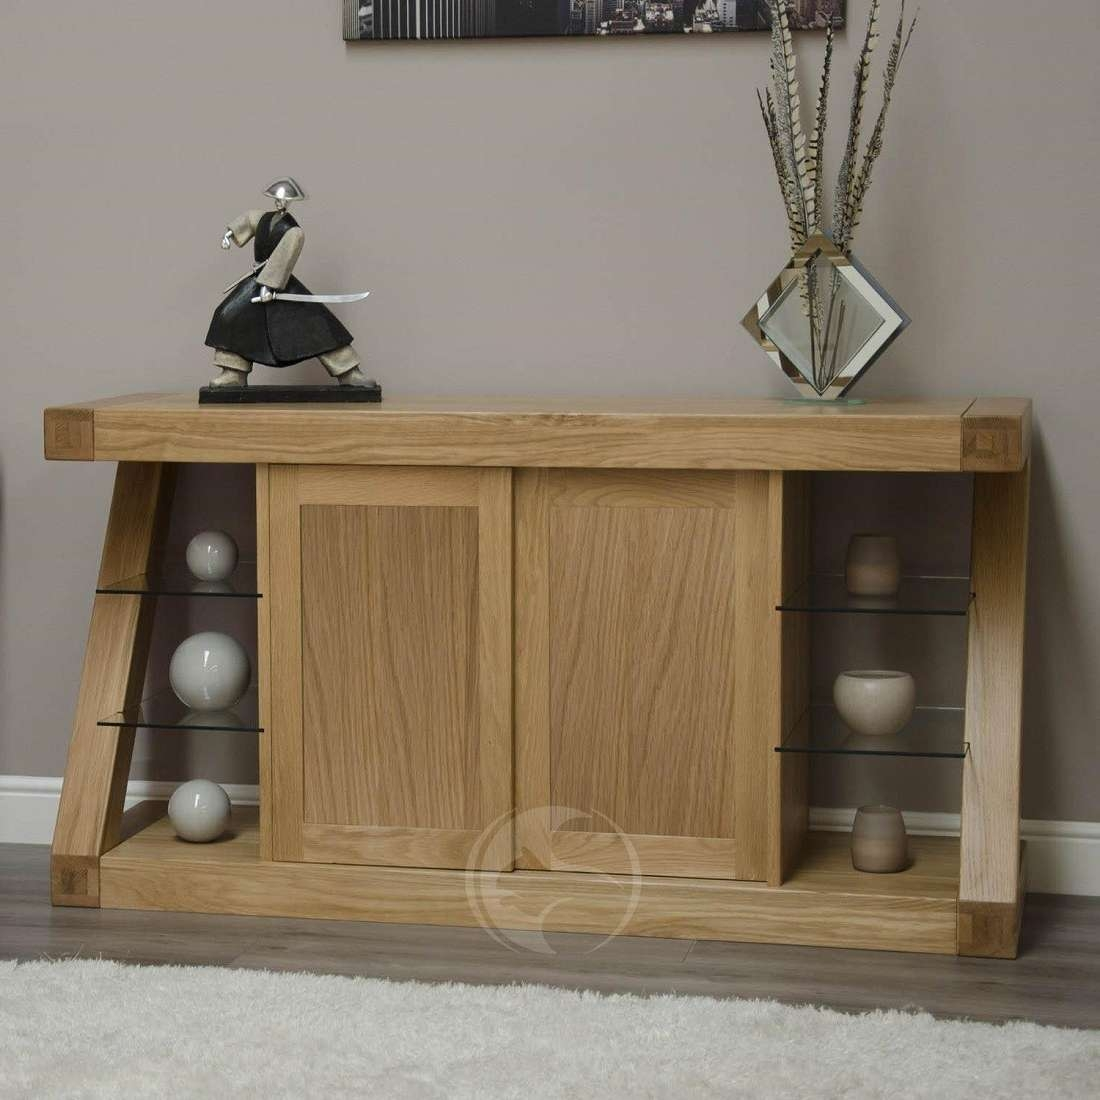 Z Shape Solid Oak Large Sideboard | Oak Furniture Uk With Regard To Large Sideboards (View 20 of 20)